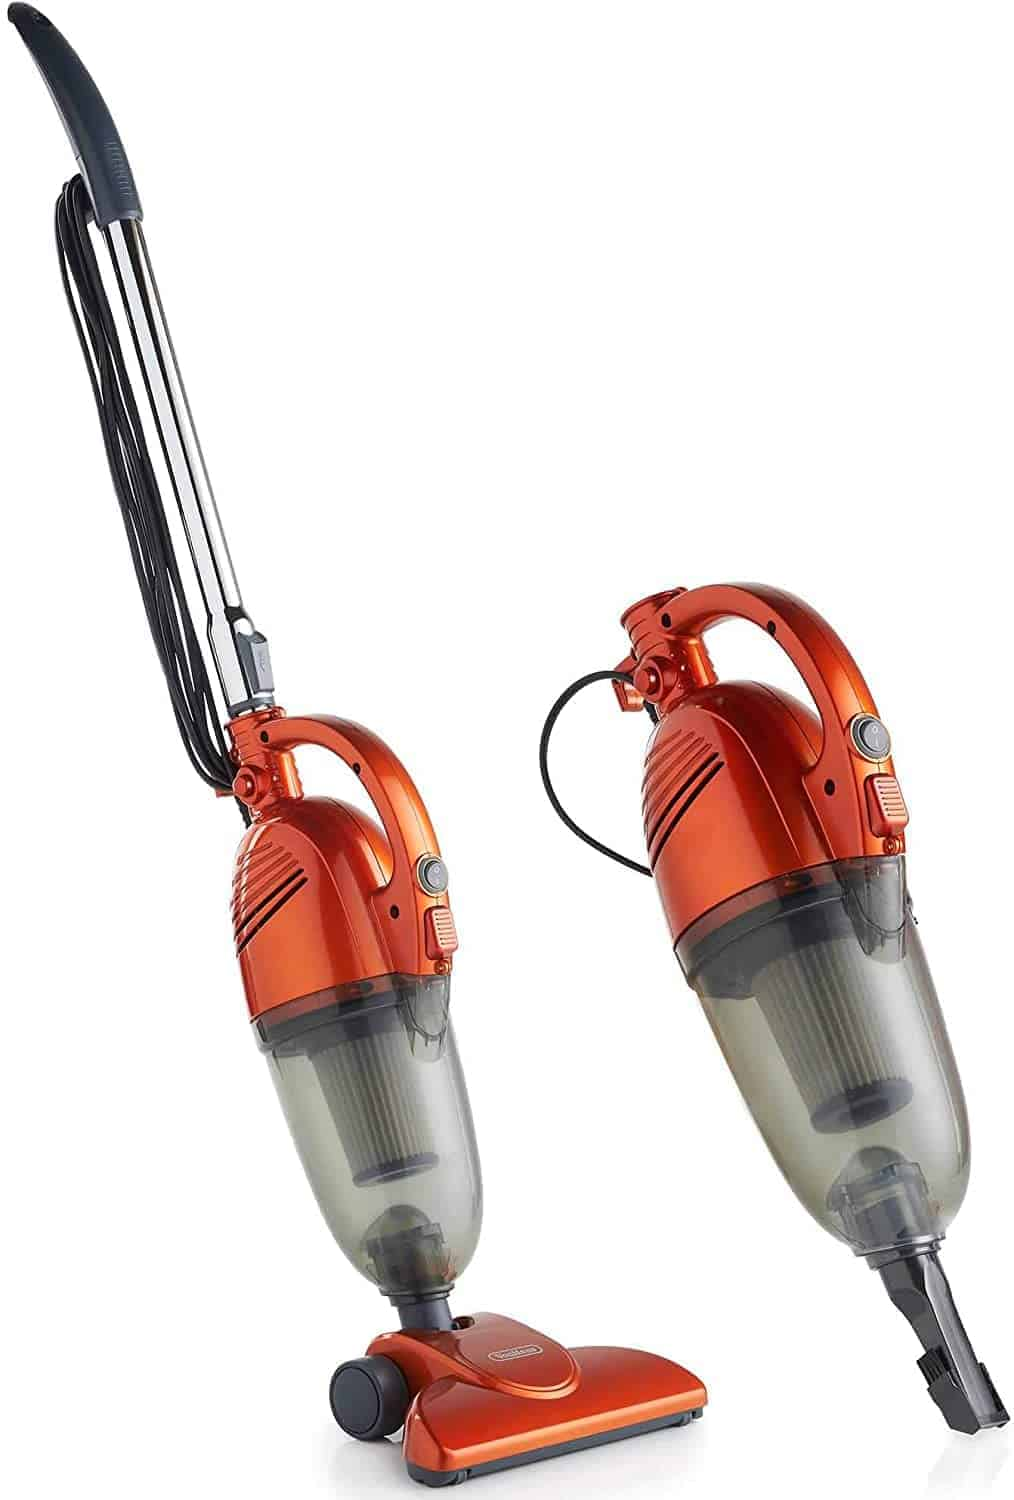 Best 2 in 1 handheld stick vacuum for hardwood floors: VonHaus 600W with HEPA Filtration